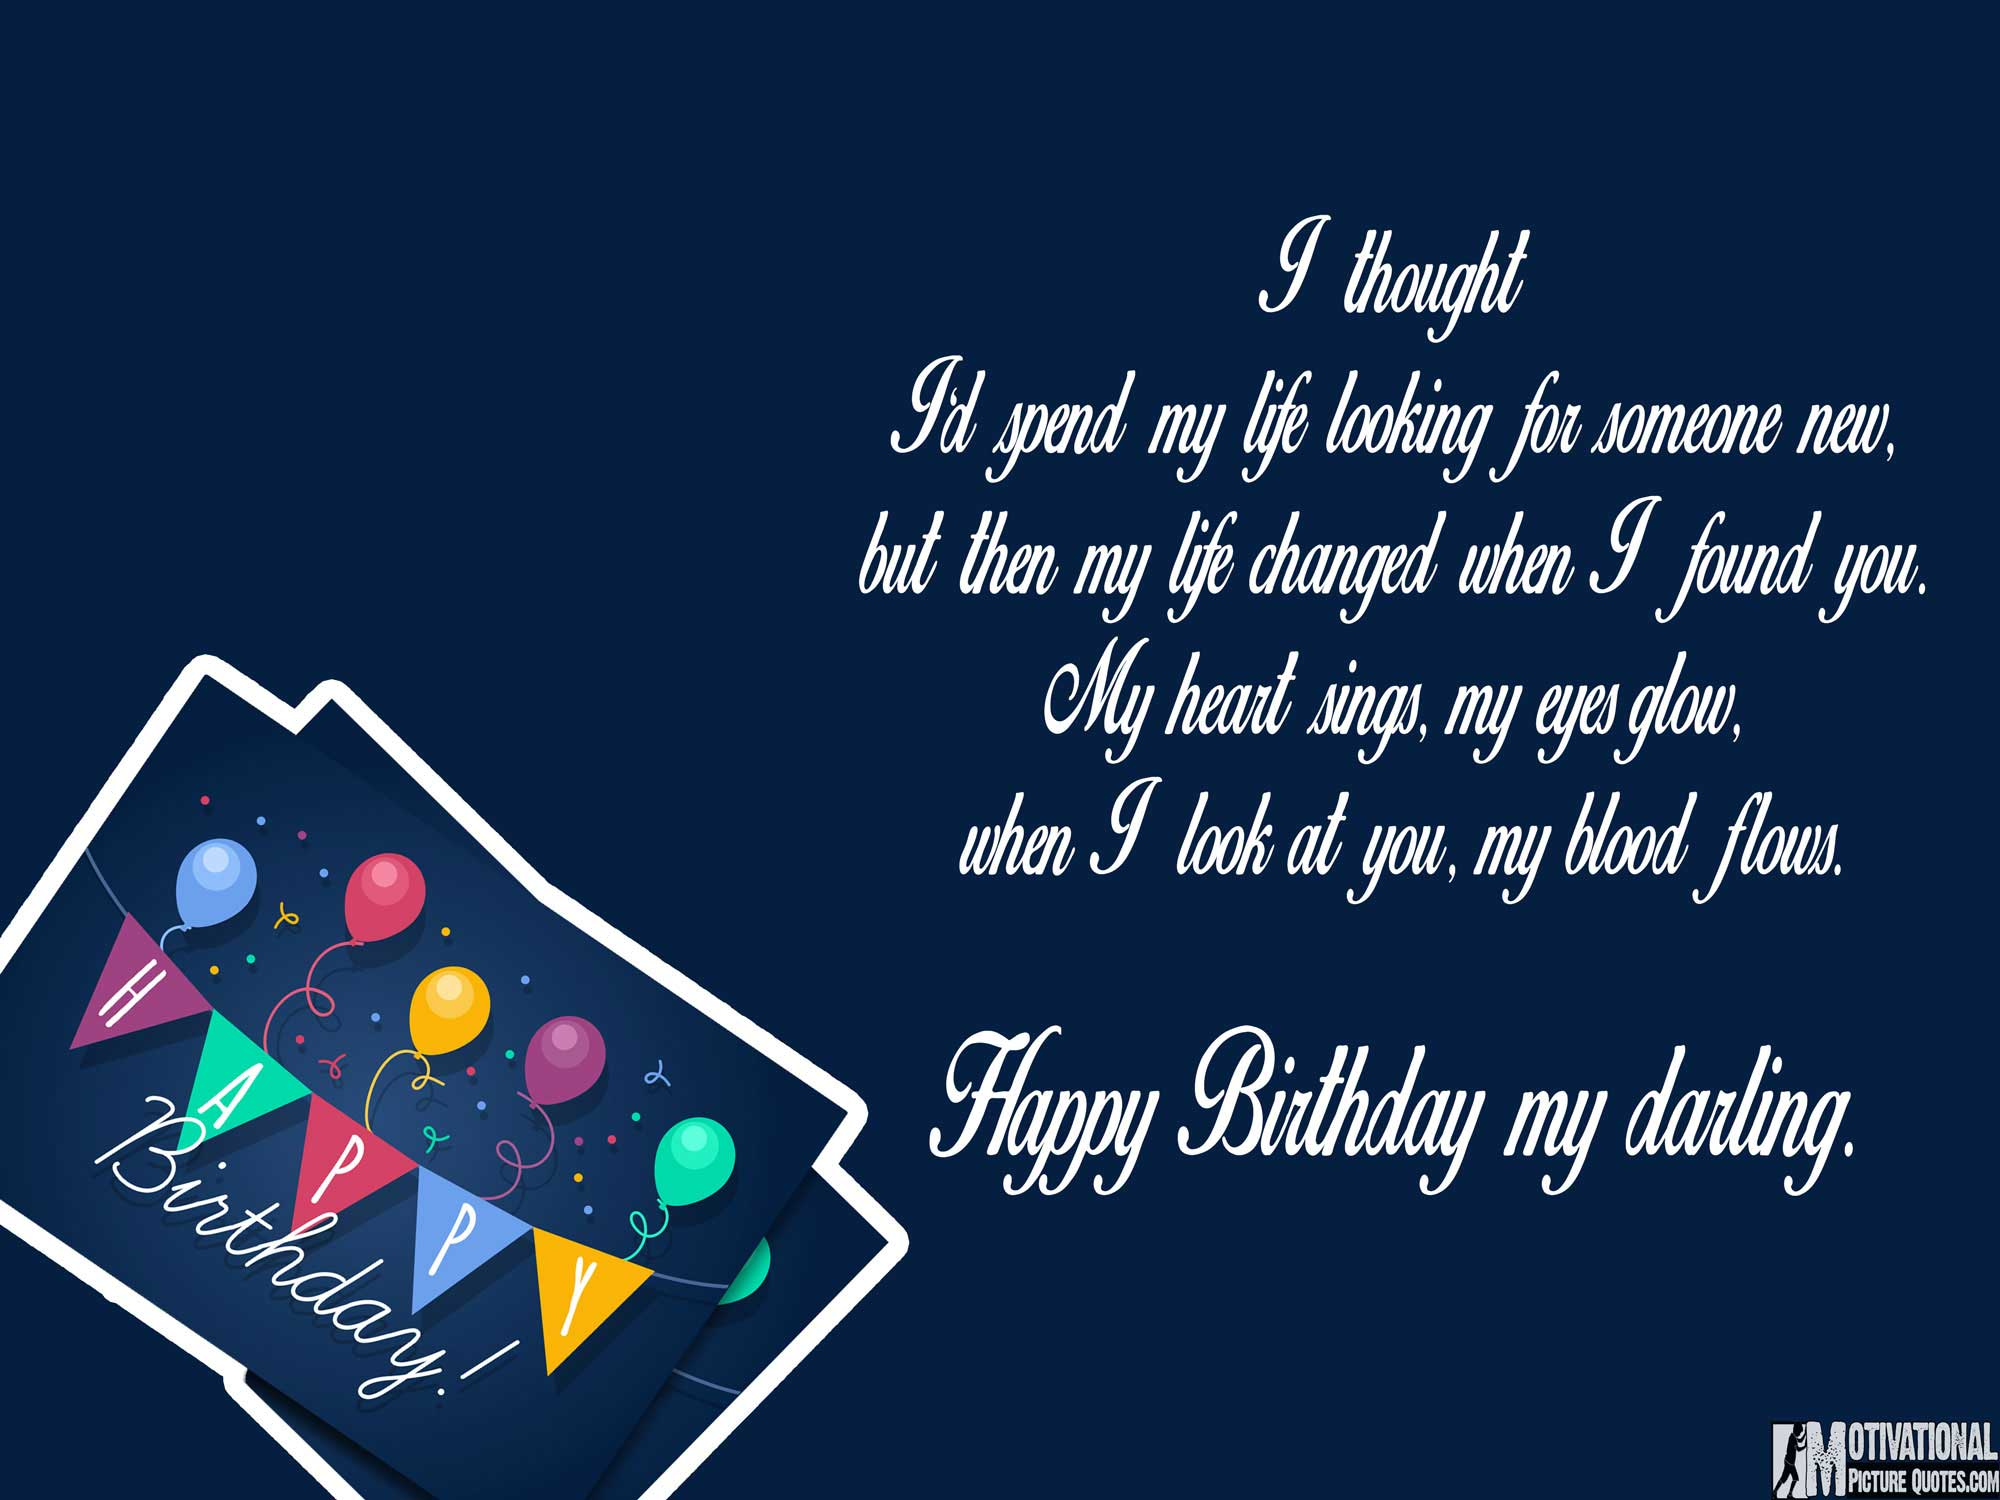 Boyfriends Quotes 35 Inspirational Birthday Quotes Images  Insbright